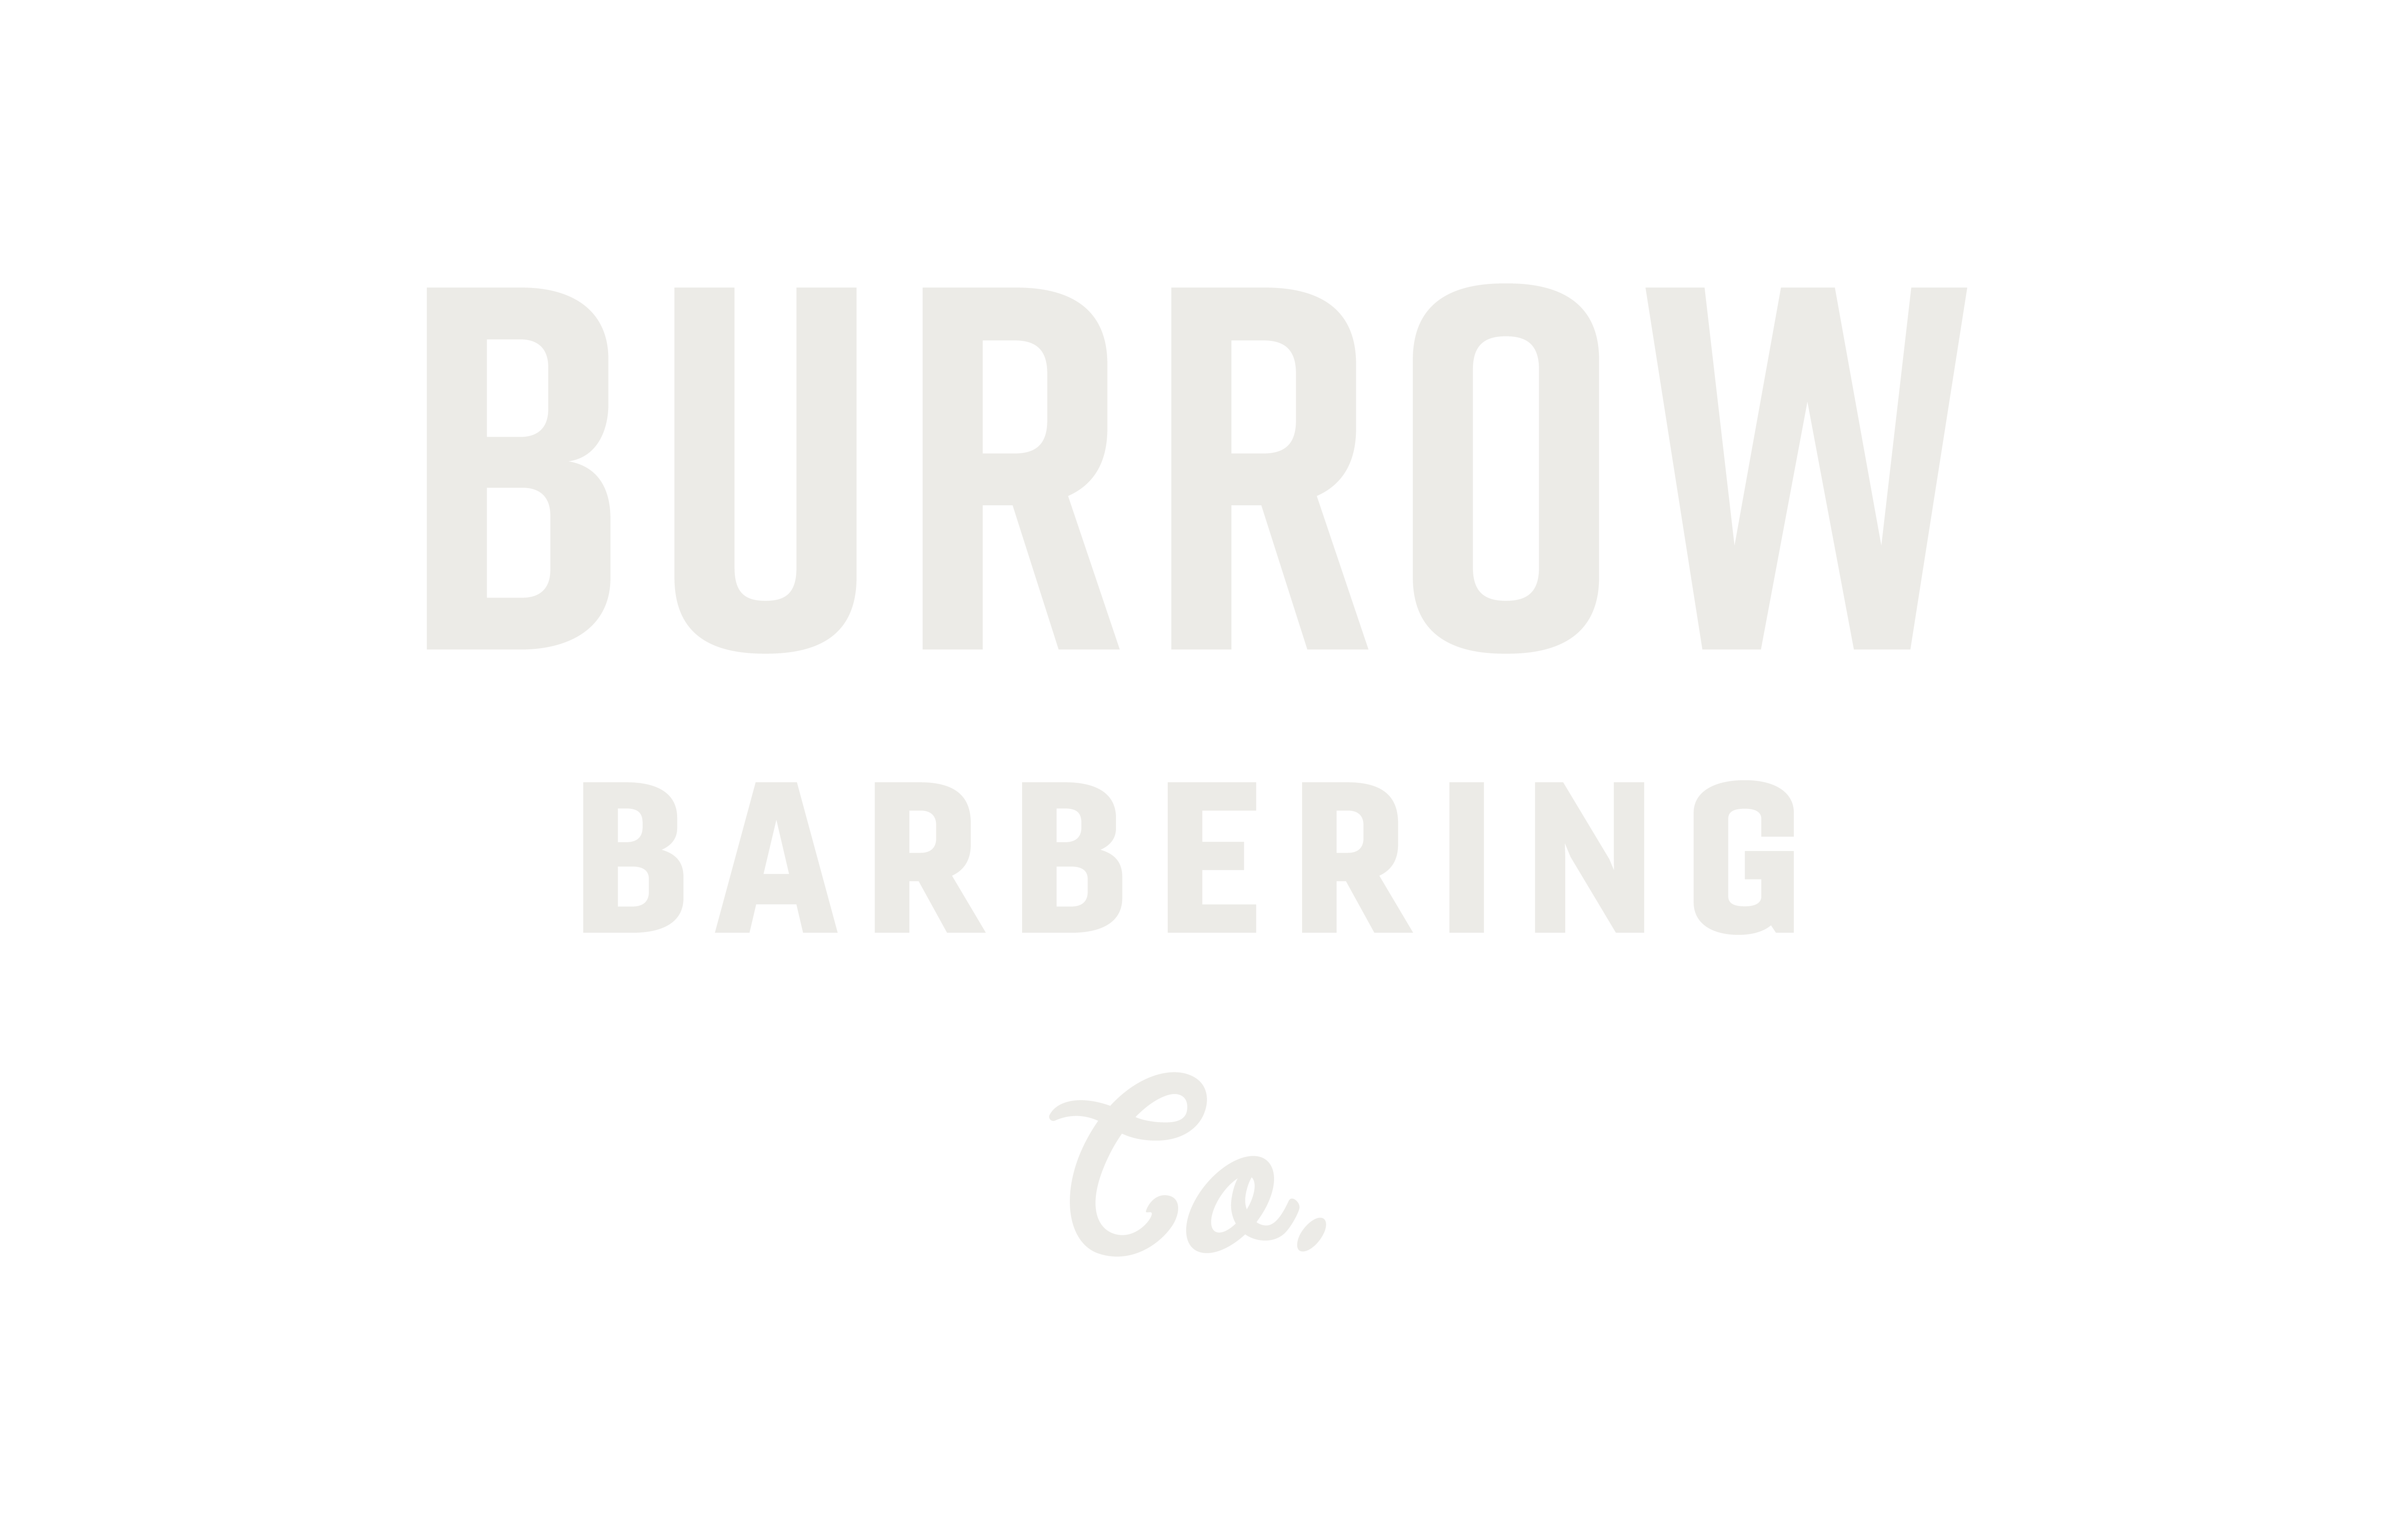 burrow-barbering-co-misuse-d